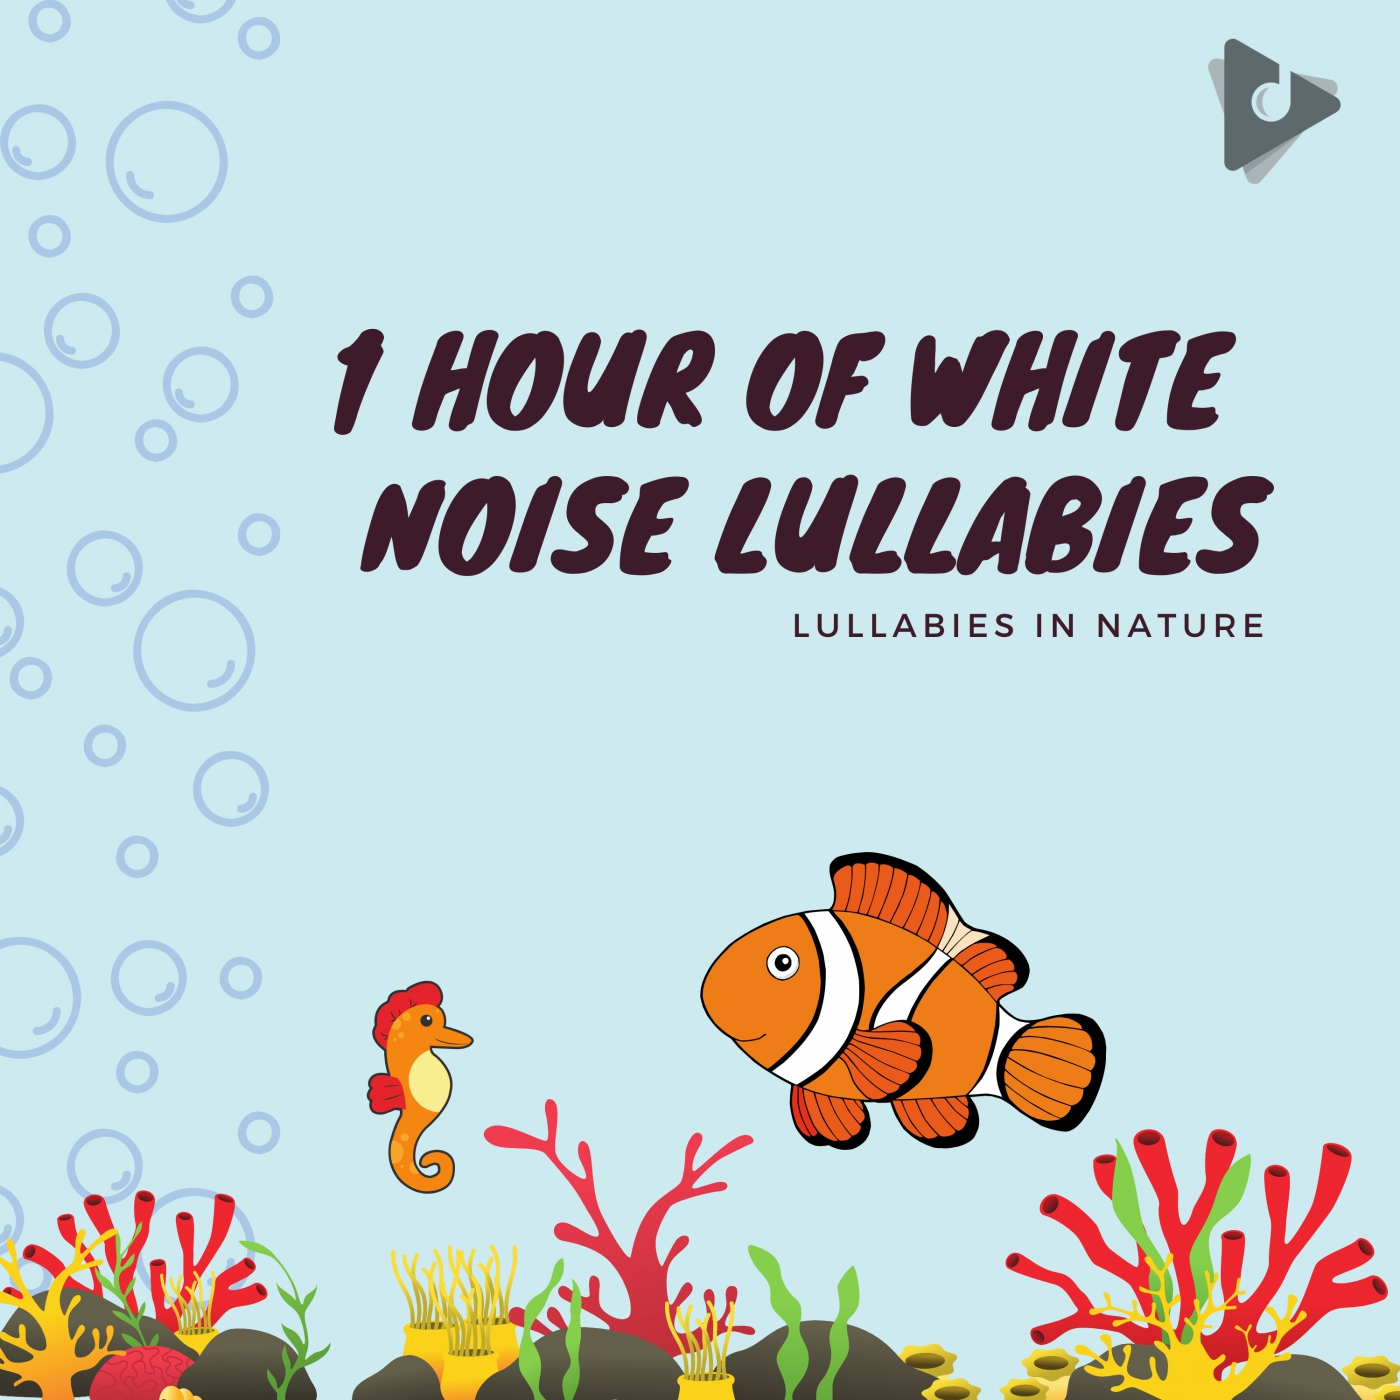 1 Hour of White Noise Lullabies